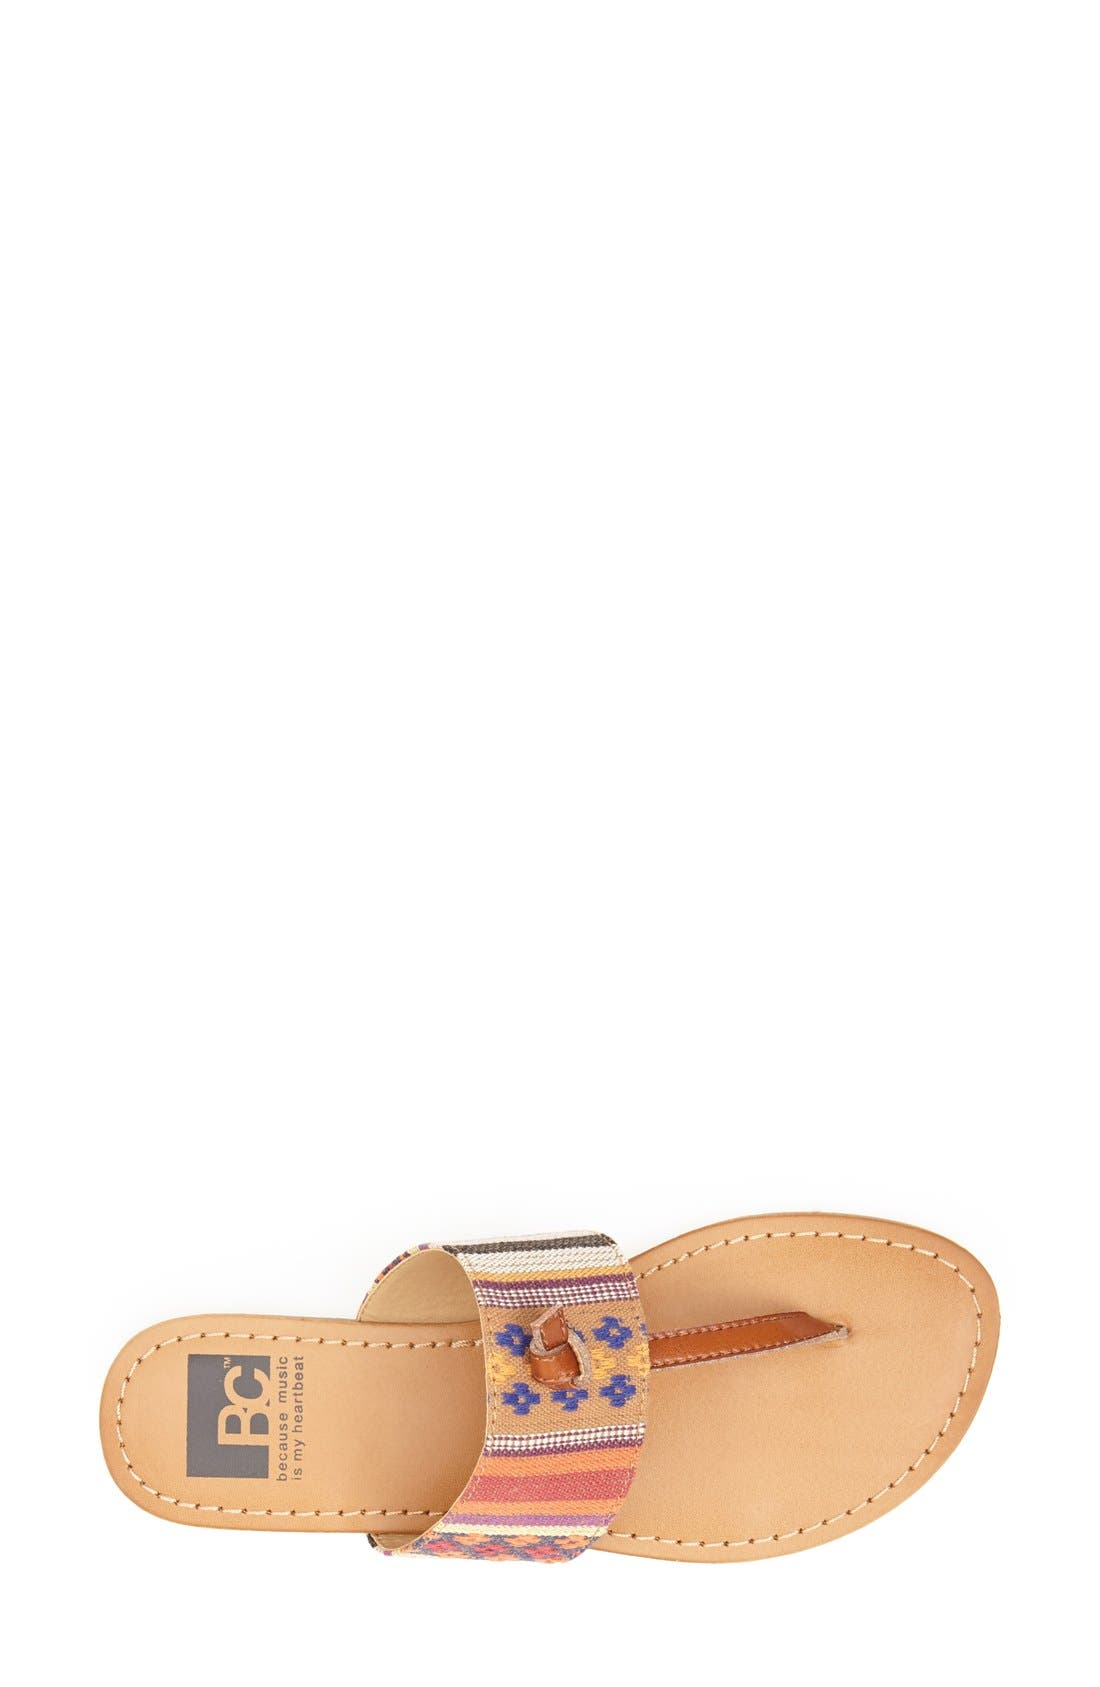 Alternate Image 3  - BC Footwear 'Gotta Try' Thong Sandal (Women)